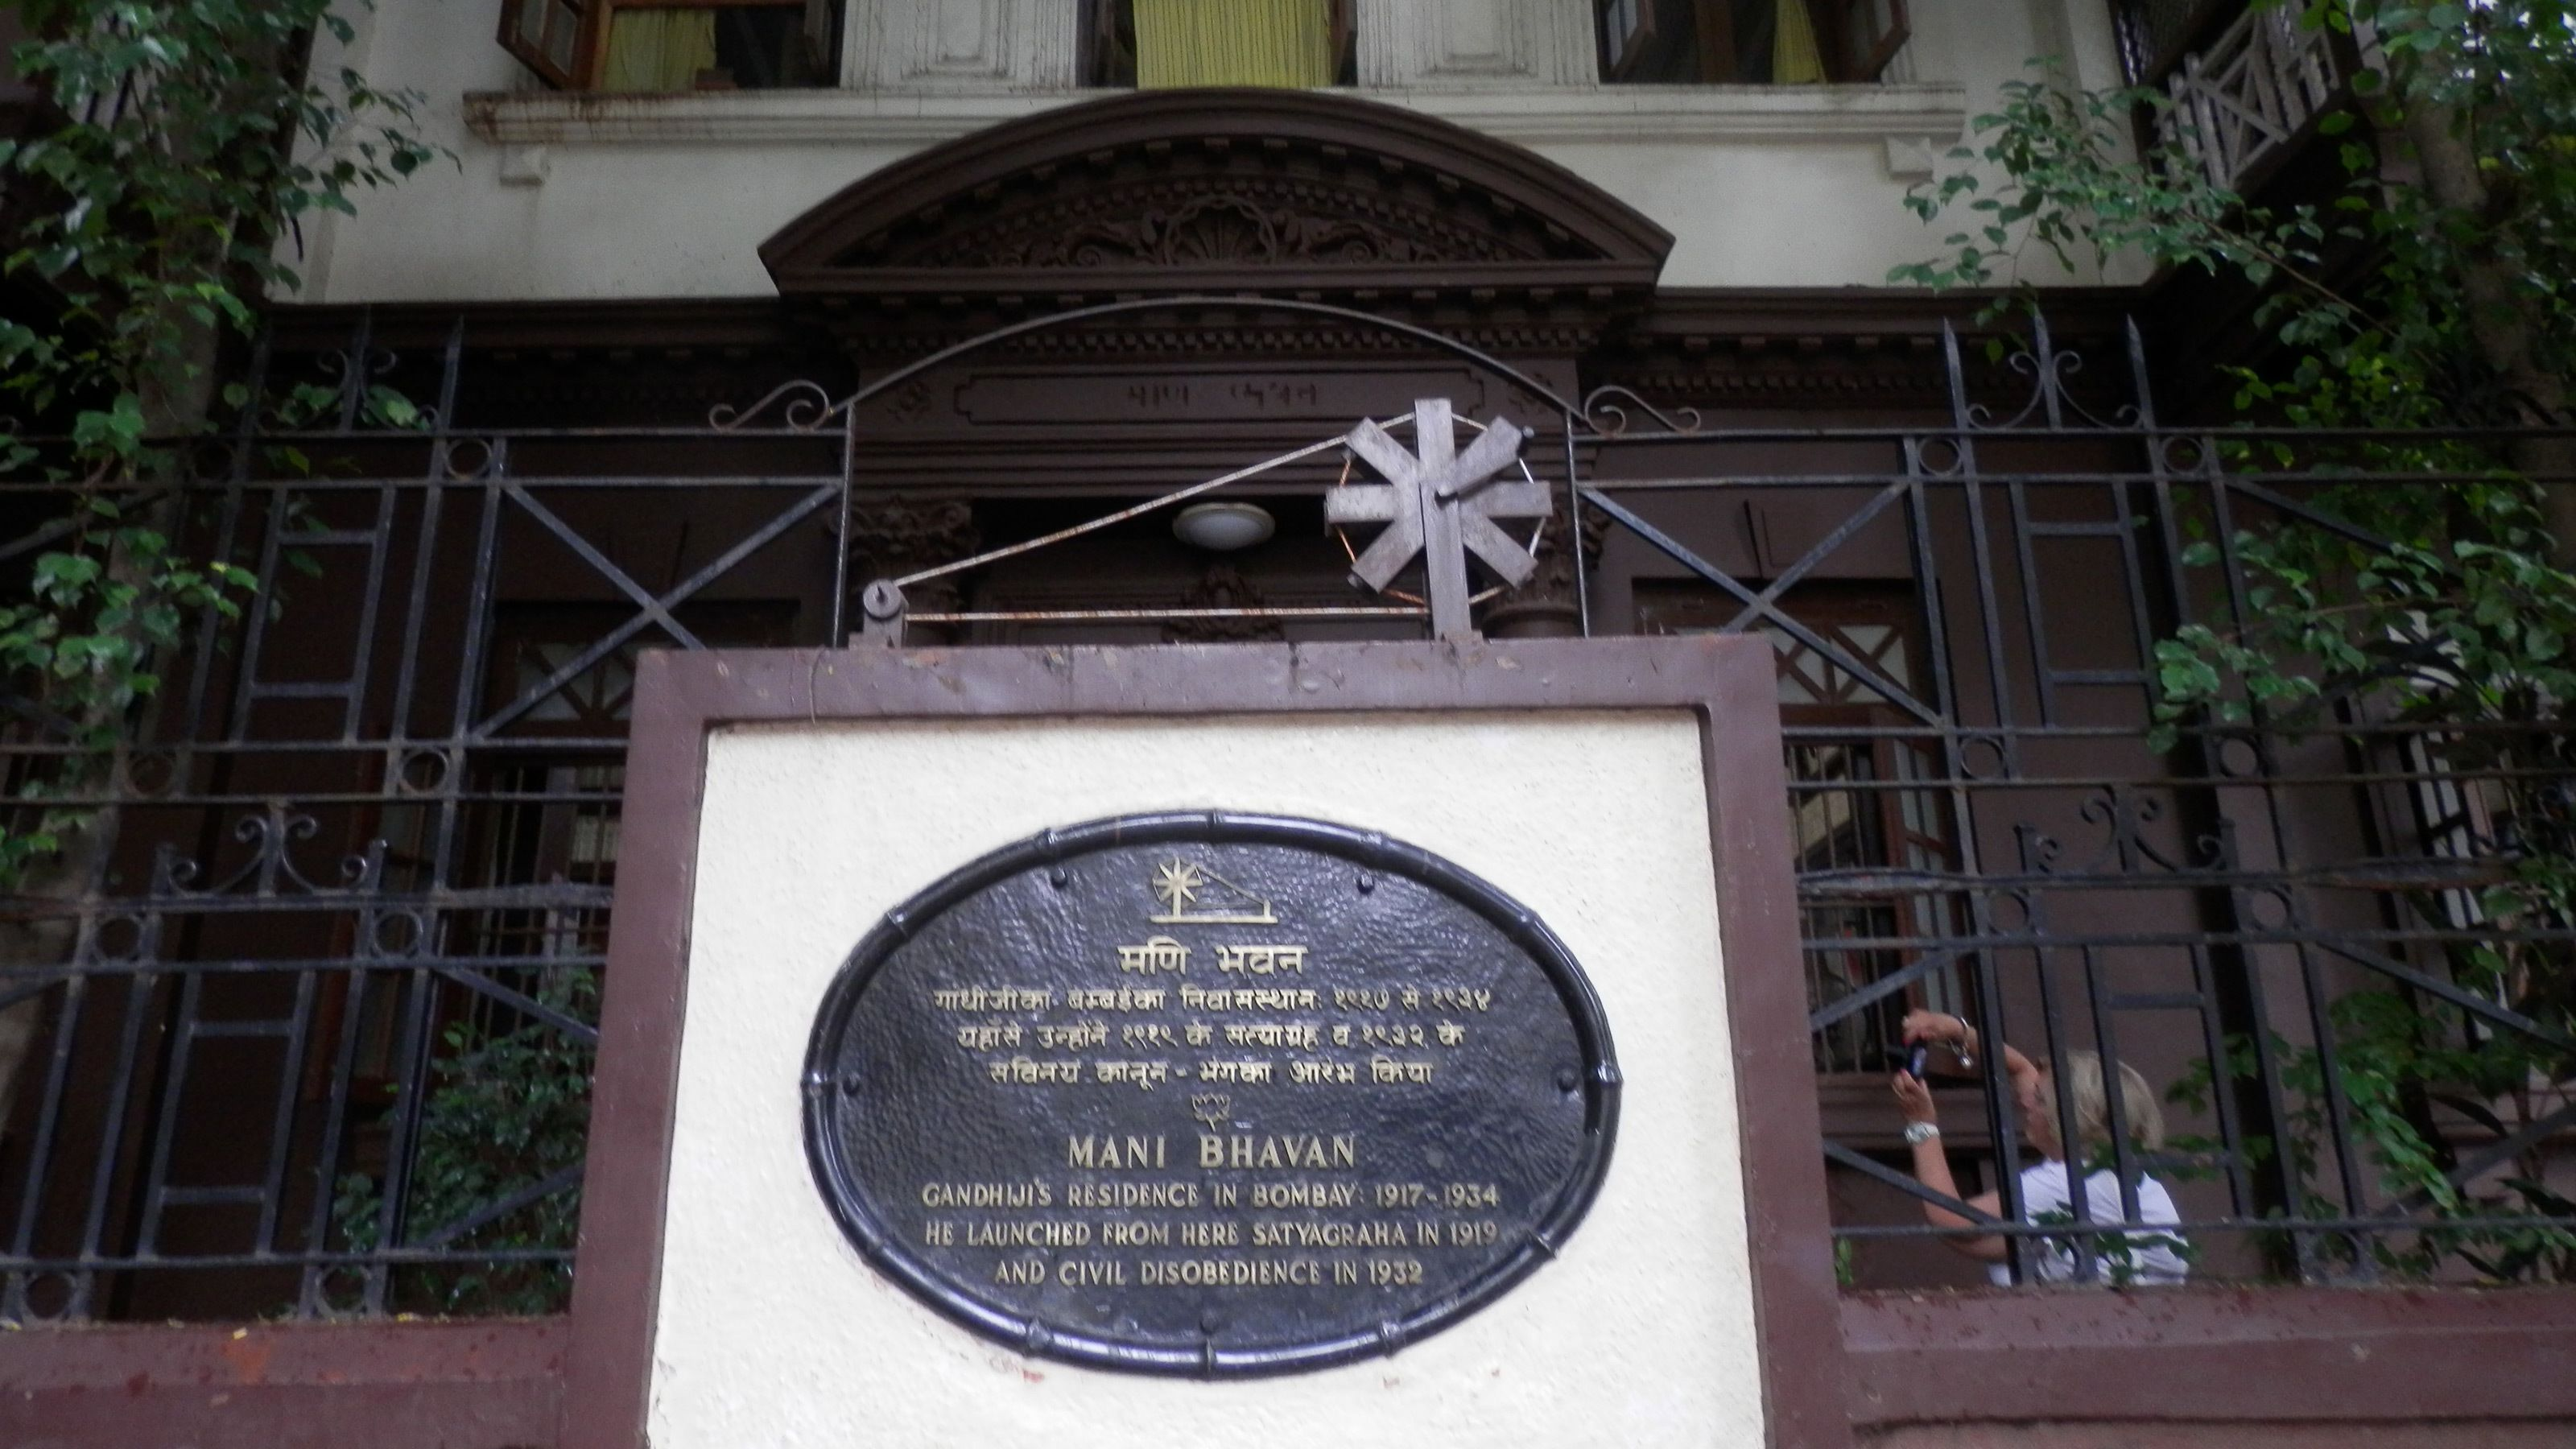 The sign outside Ghandi's residence in Mumbai